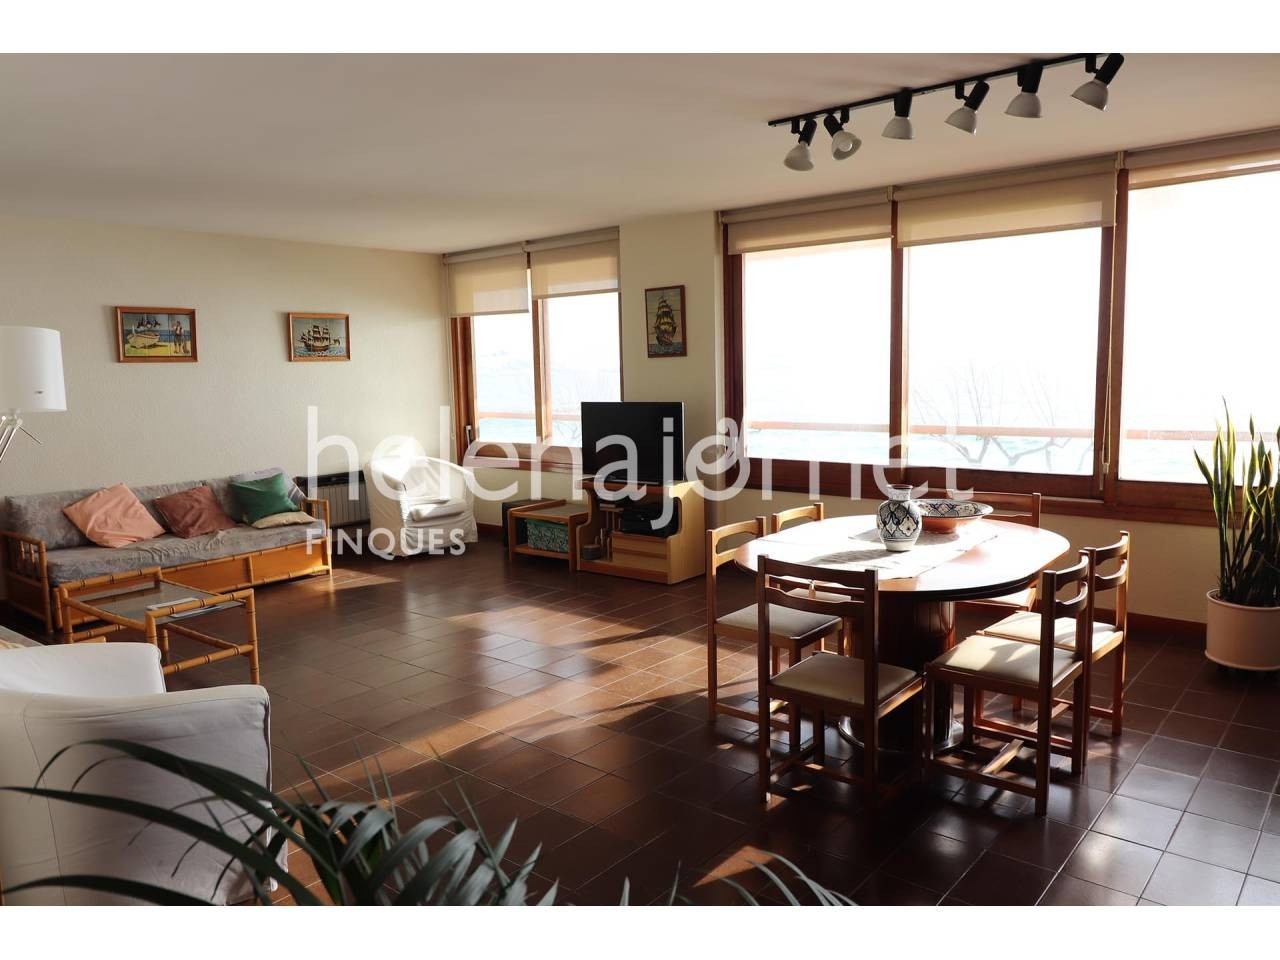 Big apartment in a privileged location in front of the beach in Sant Antoni de Calonge. - 1070